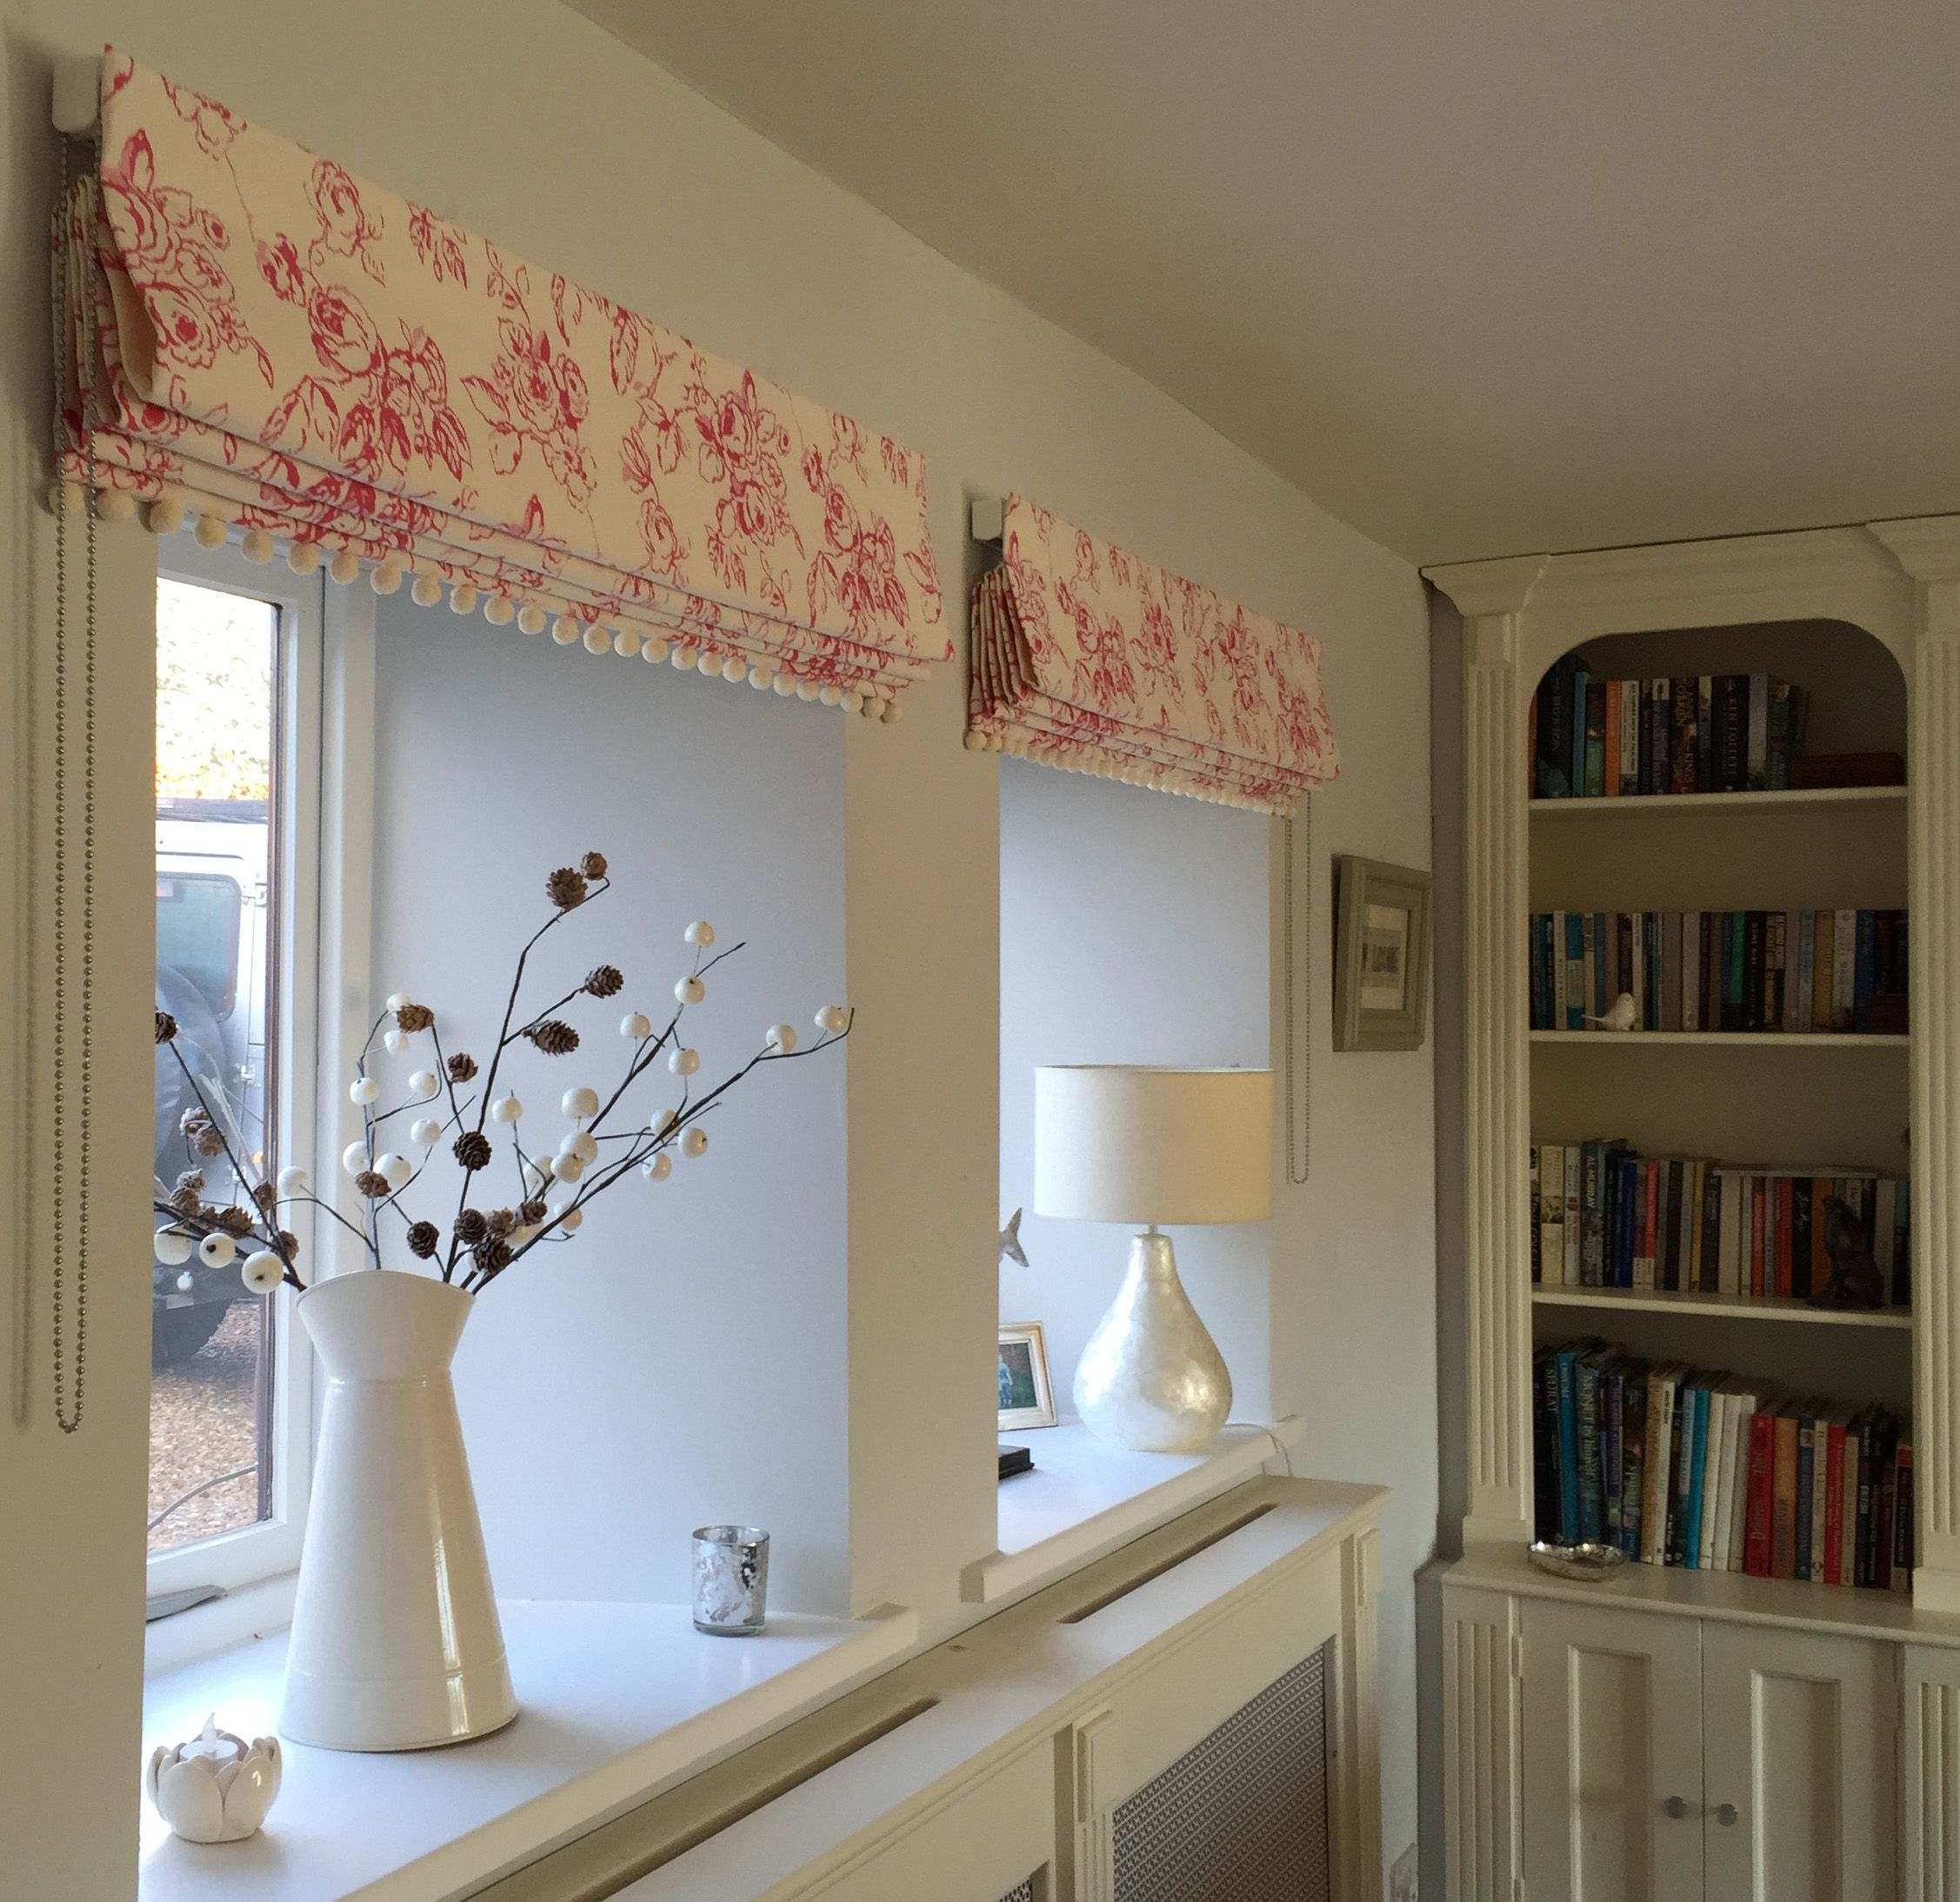 Roman Blinds In Delphine From The Clarisse Cllection My